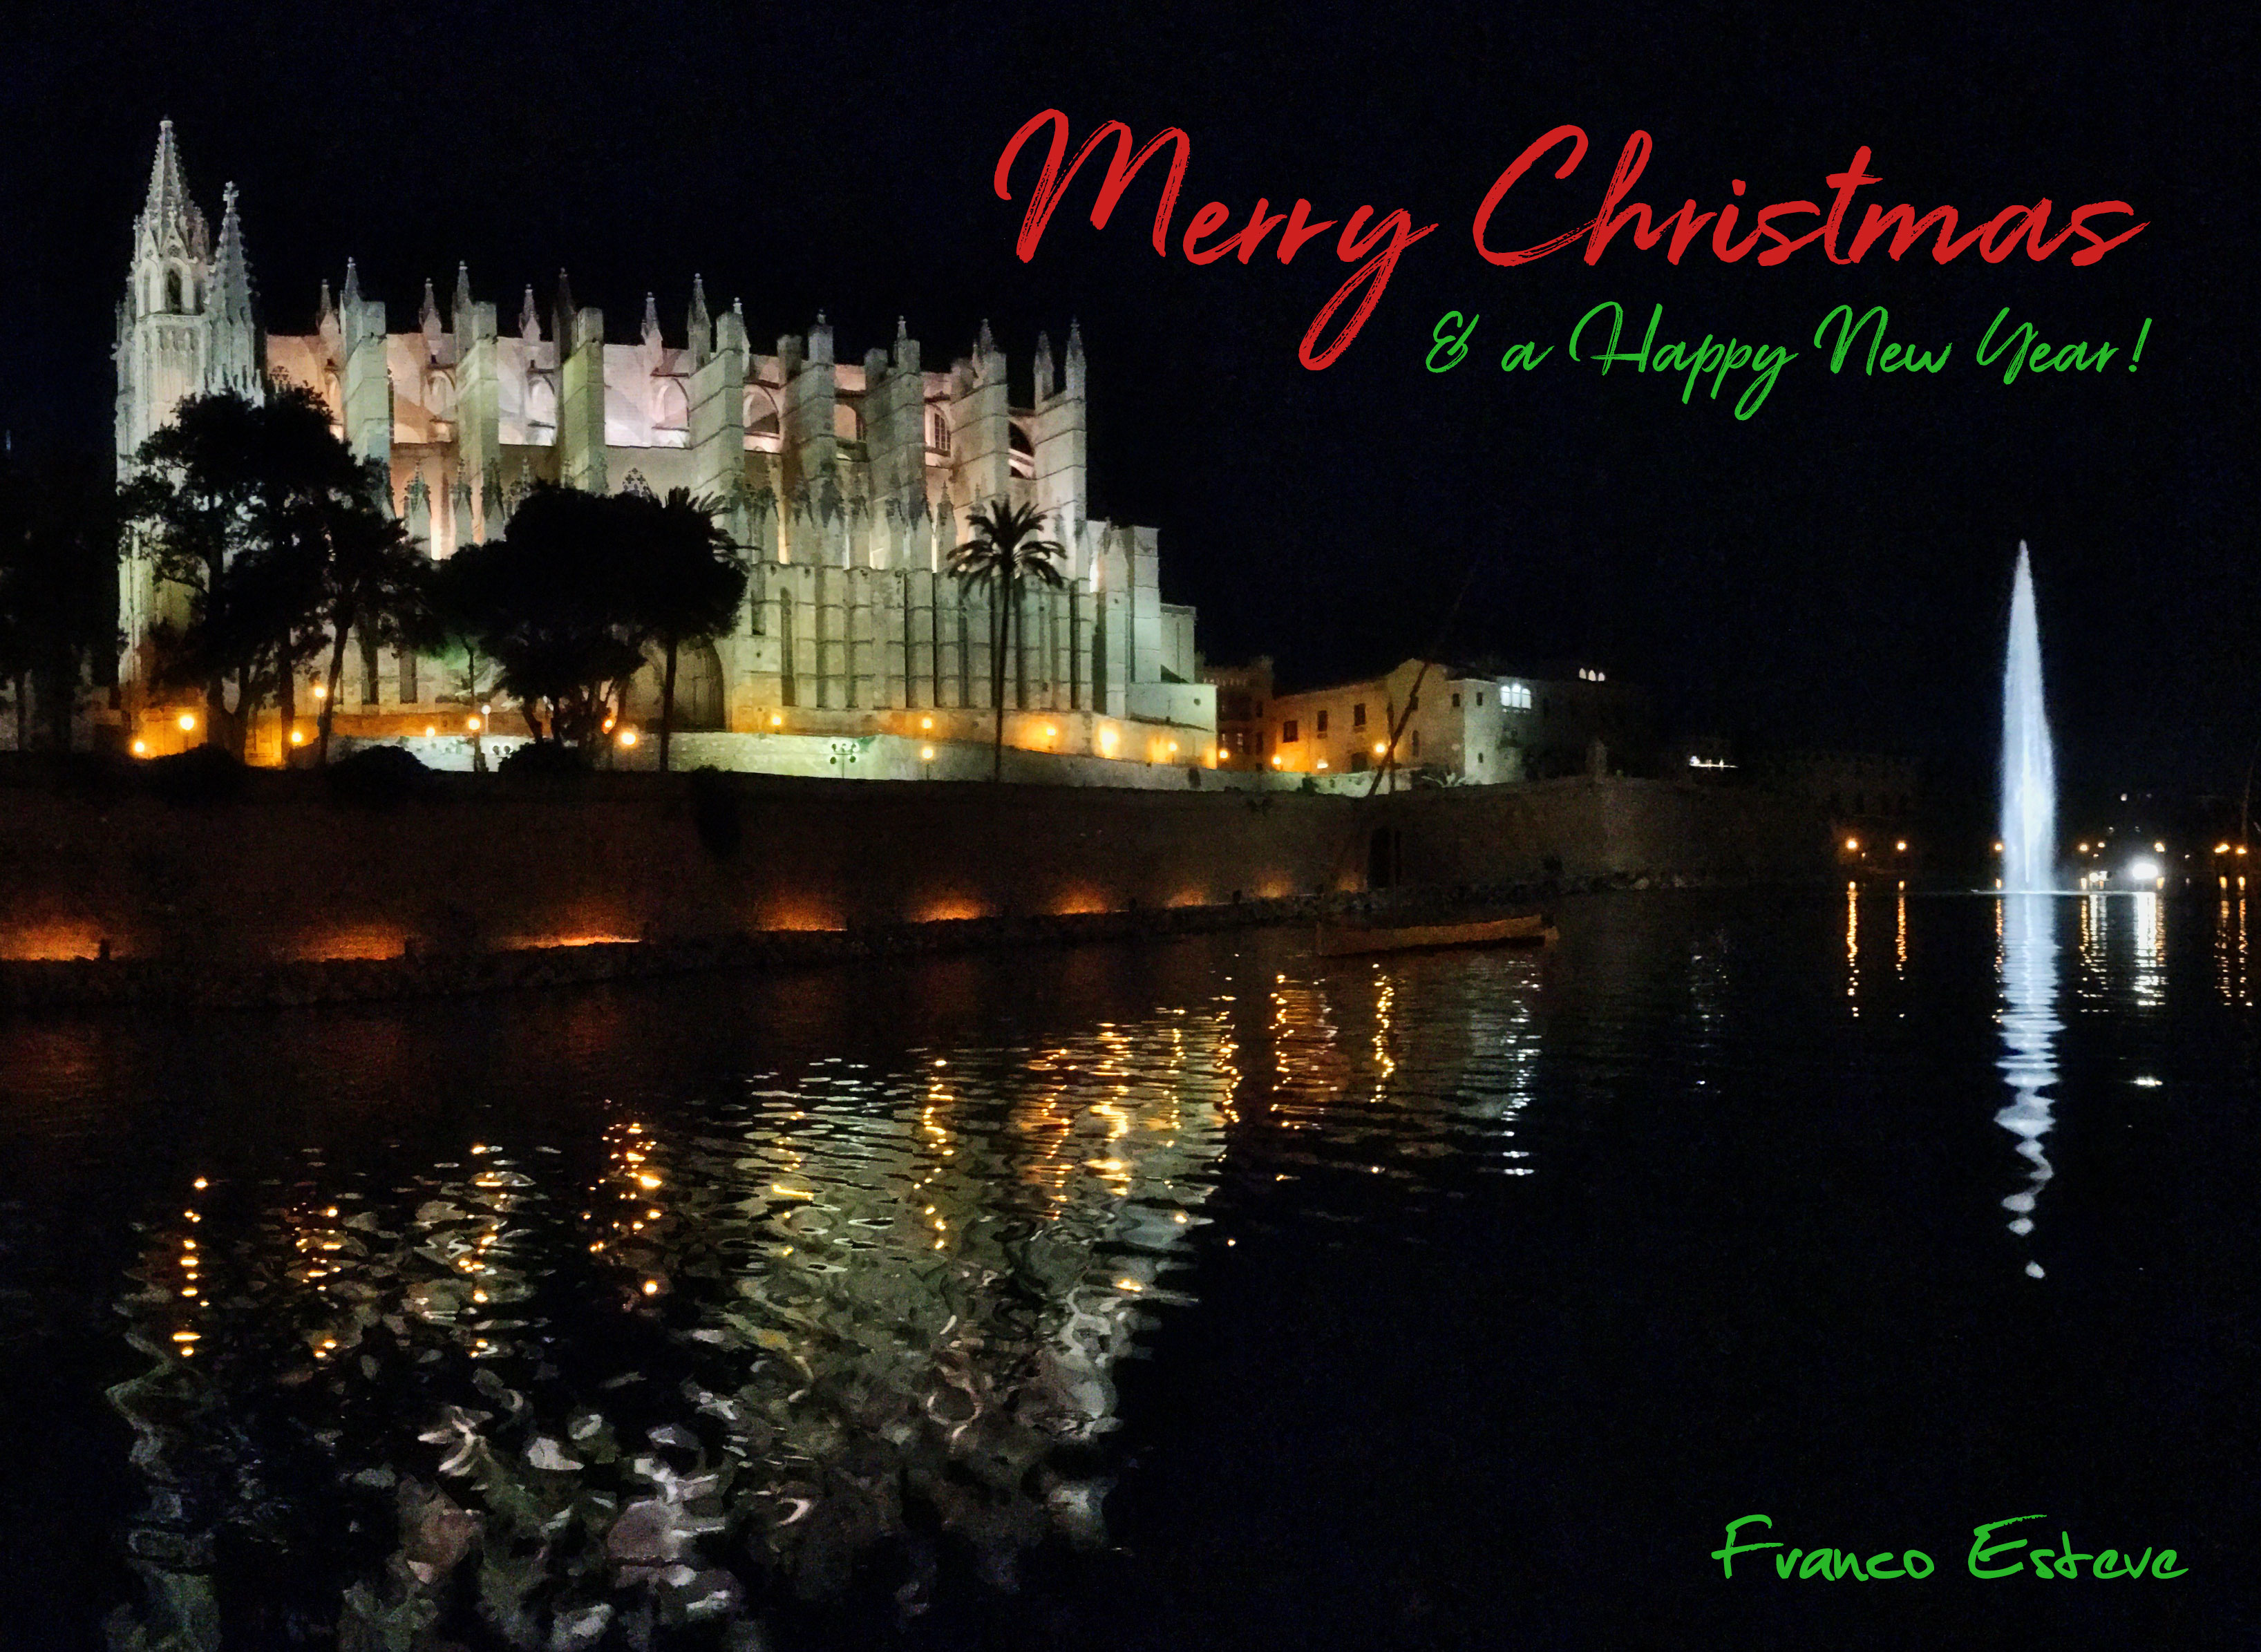 Merry Christmas 2018 and a Happy New Year!